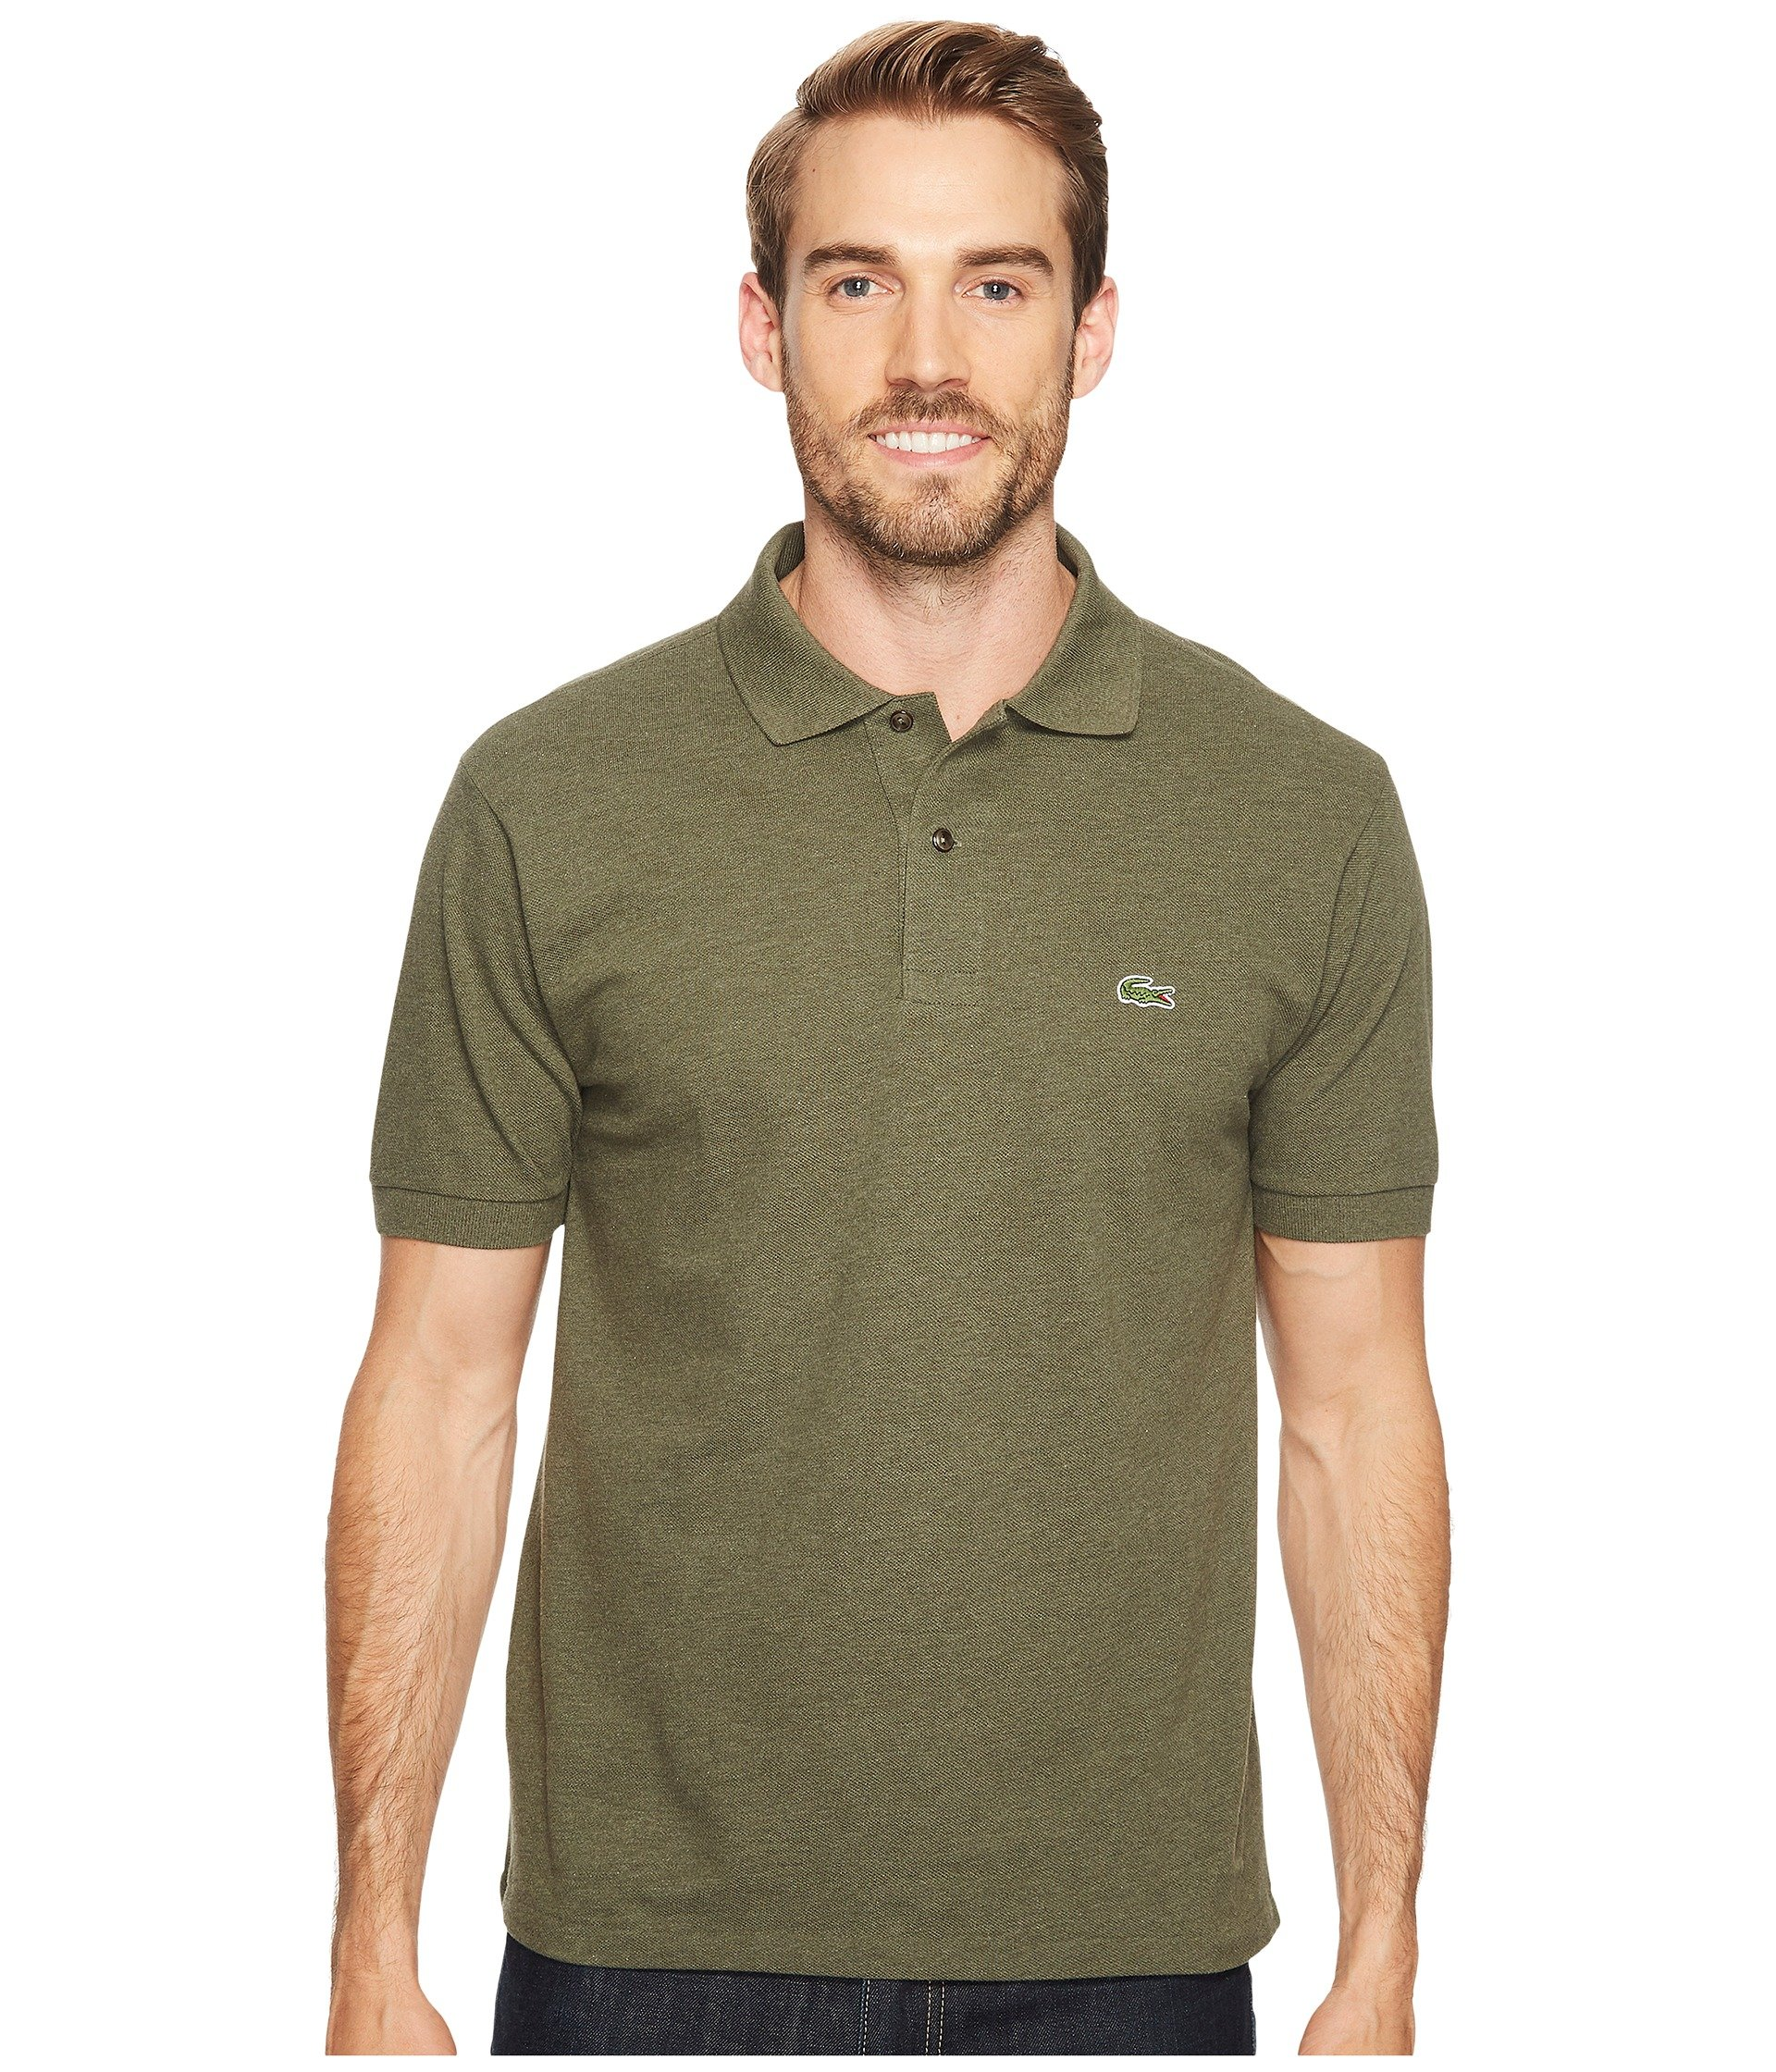 55d360678db5 Lacoste Polo Shirts On Amazon - DREAMWORKS